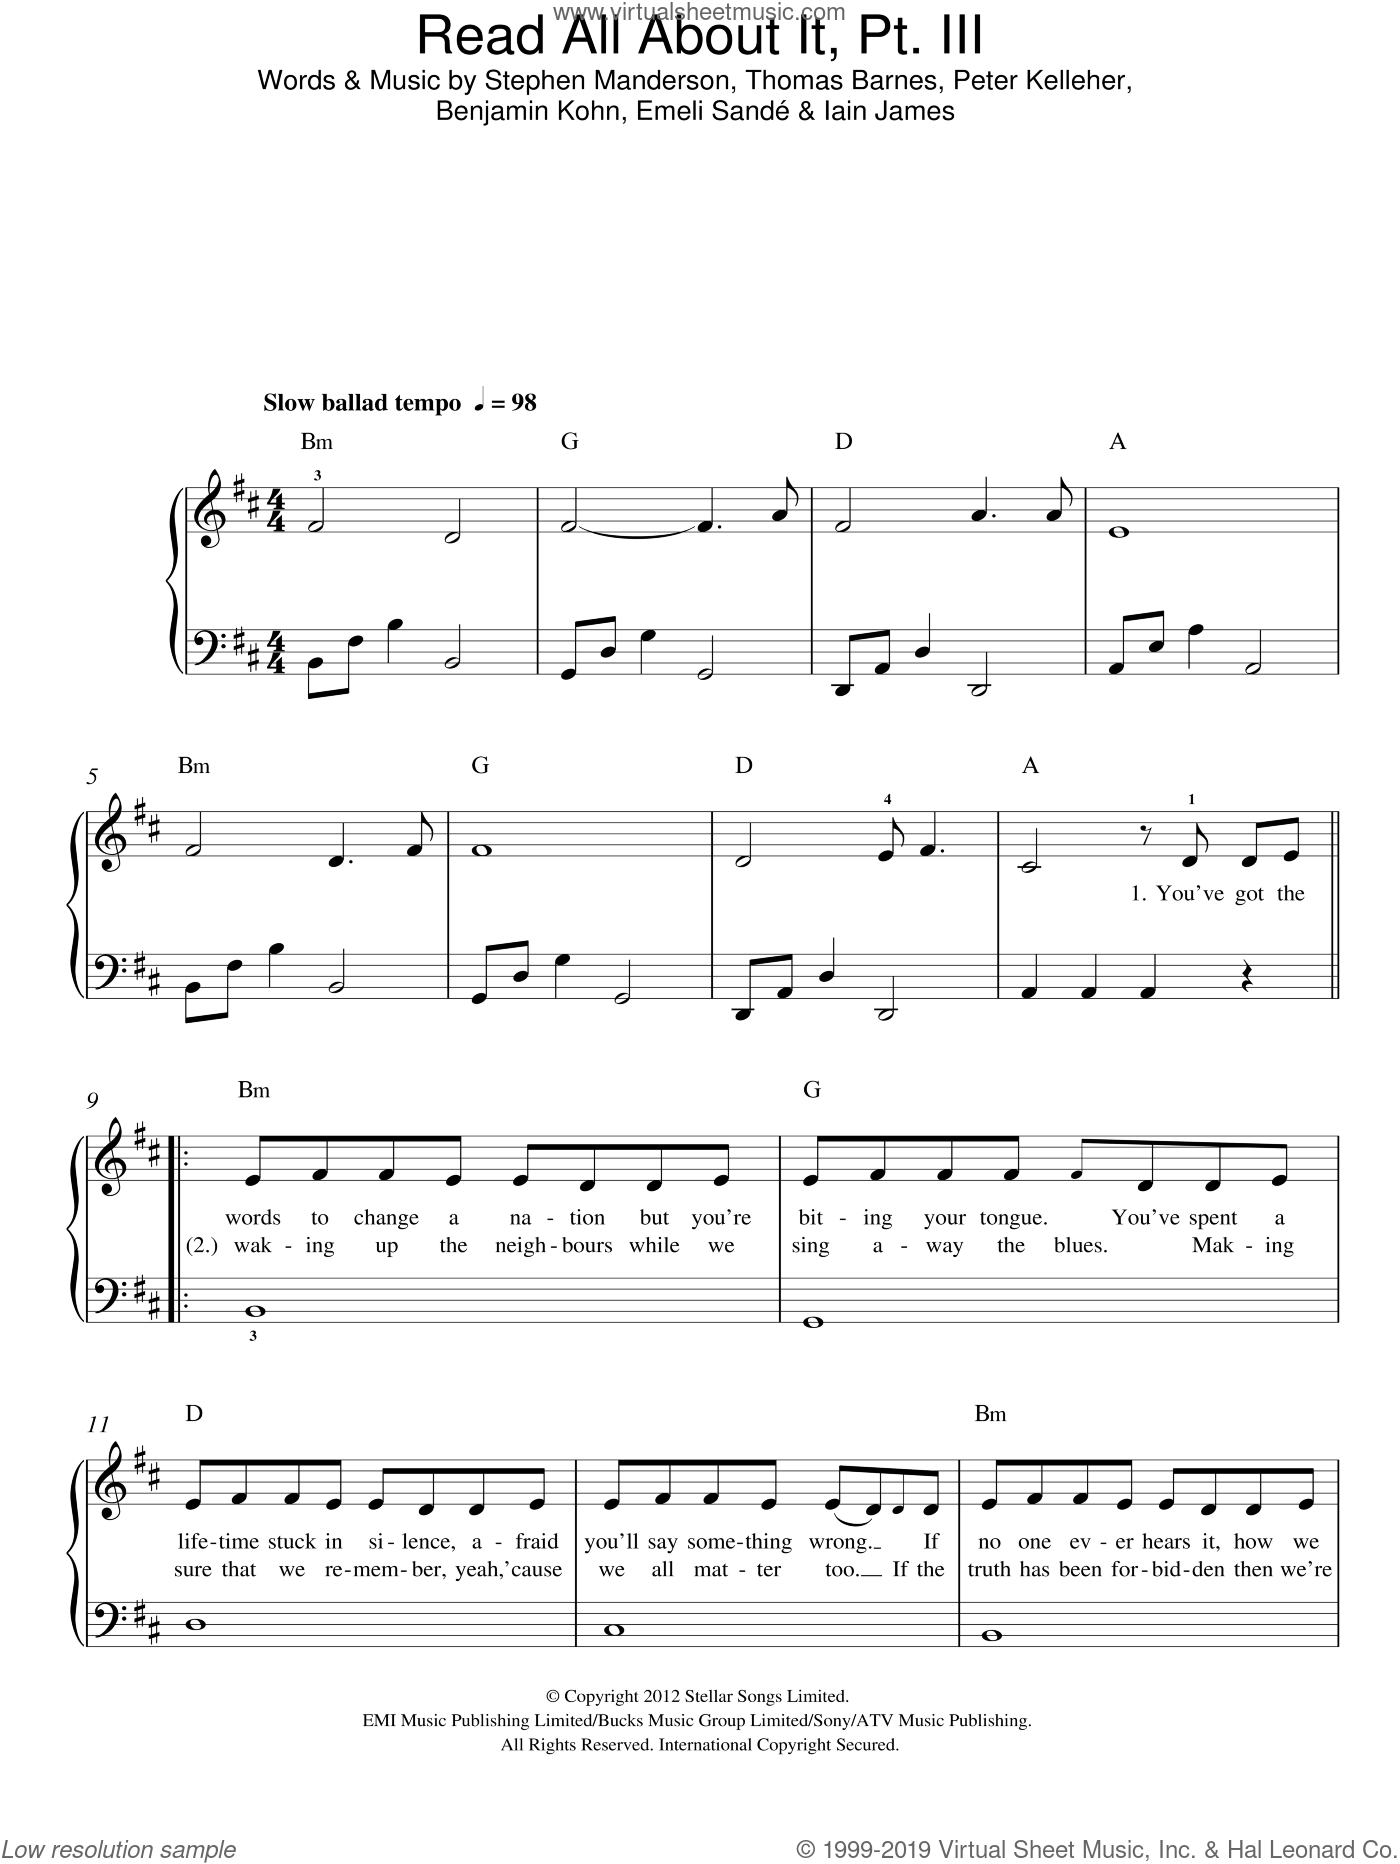 Read All About It, Part III sheet music for piano solo by Thomas Barnes, Emeli Sande, Benjamin Kohn, Iain James, Peter Kelleher and Stephen Manderson. Score Image Preview.